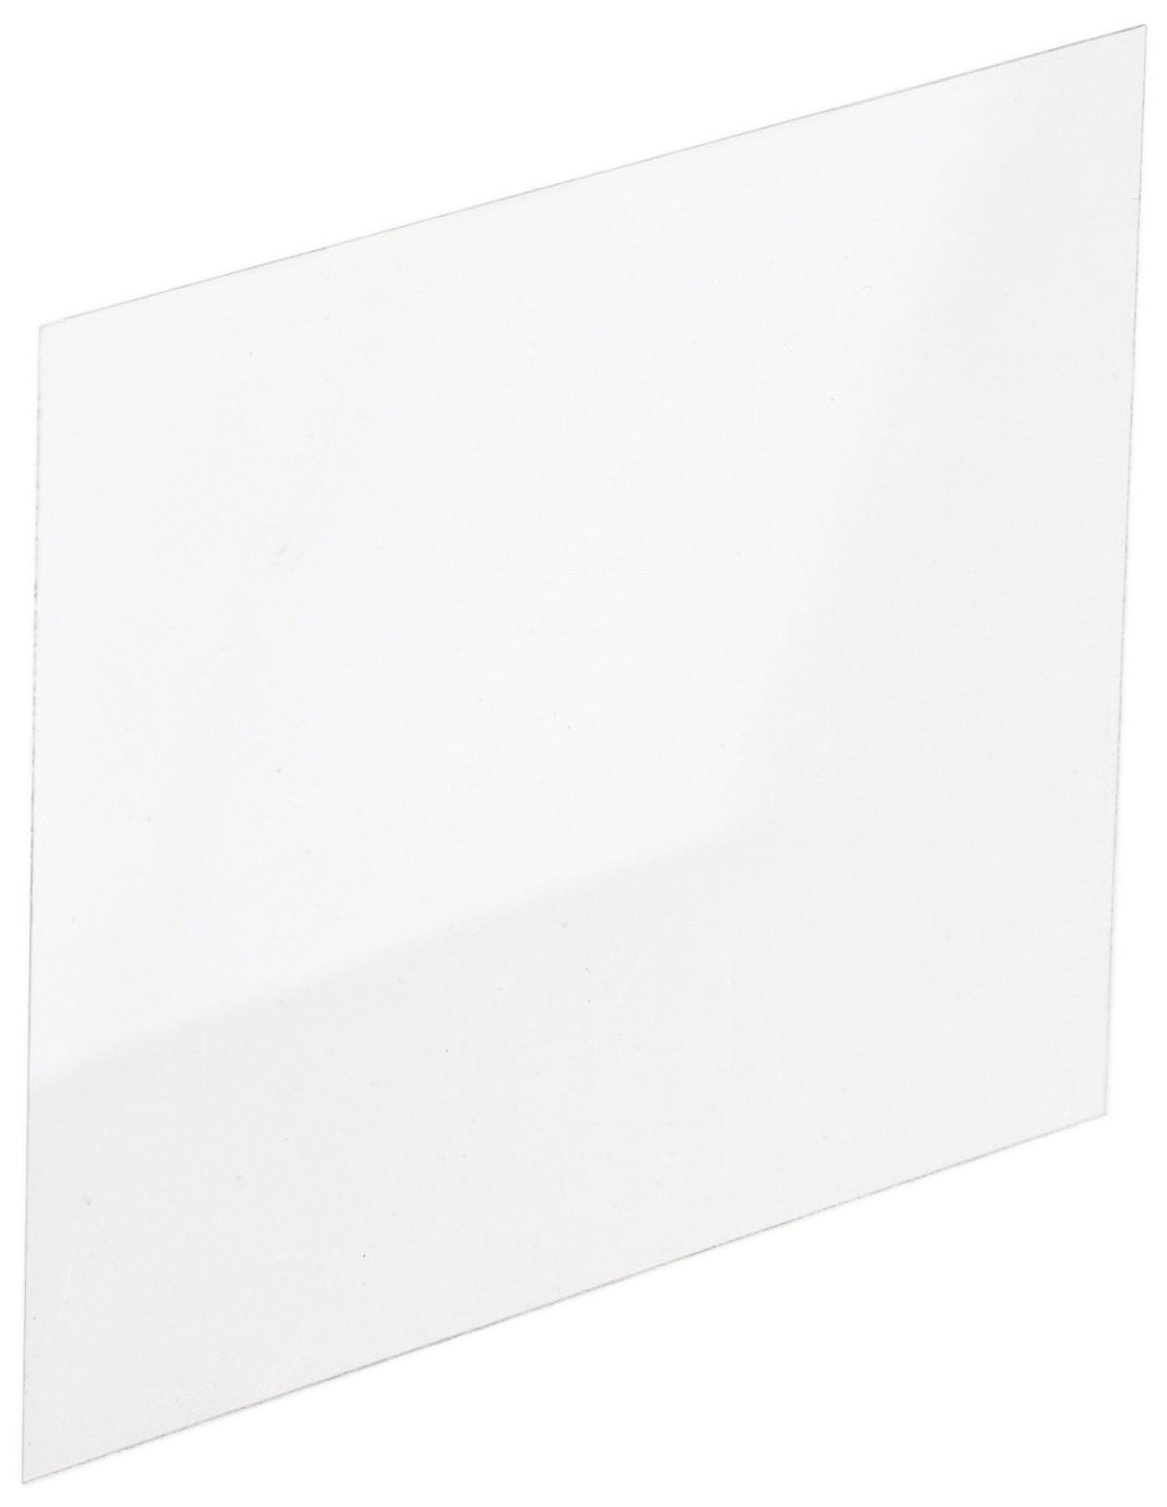 American Educational Plastic Cover Slip 22mm Length 22mm Width #2 Thickness (Bundle of 500)